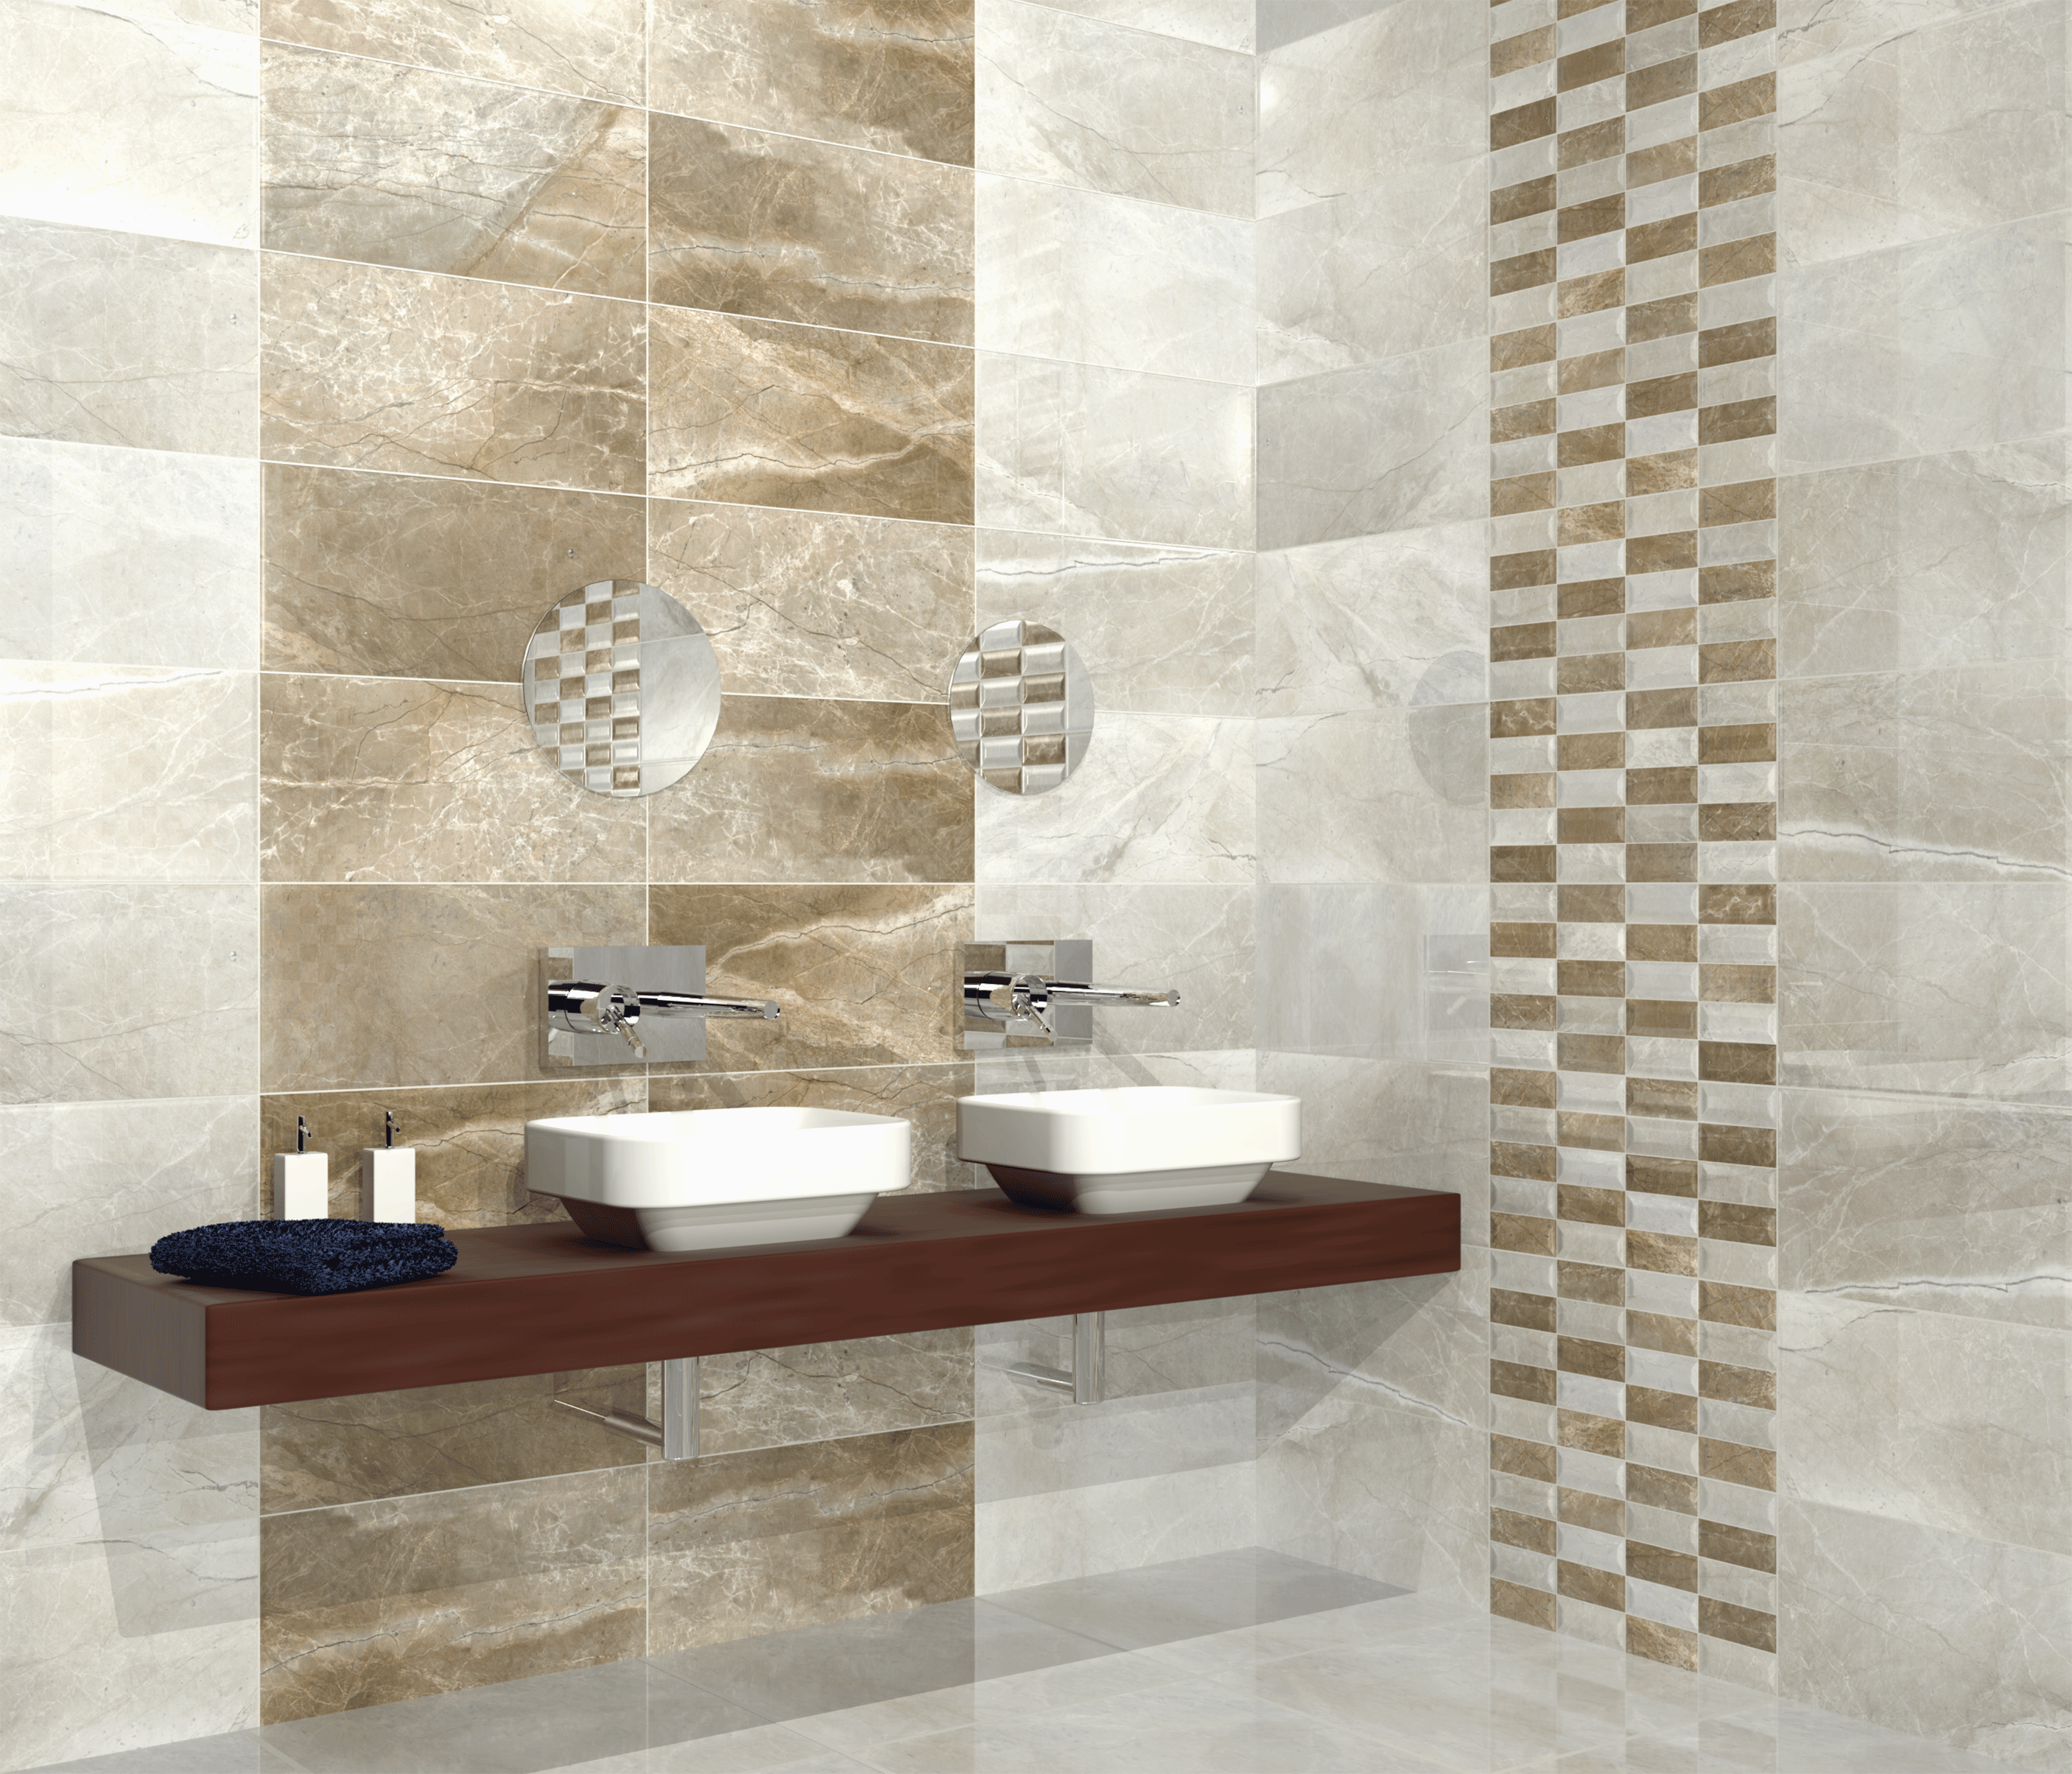 Bathroom Tiles Design And Price How To Tile A Bathroom Walls As Well As Showertub Area  Bathroom